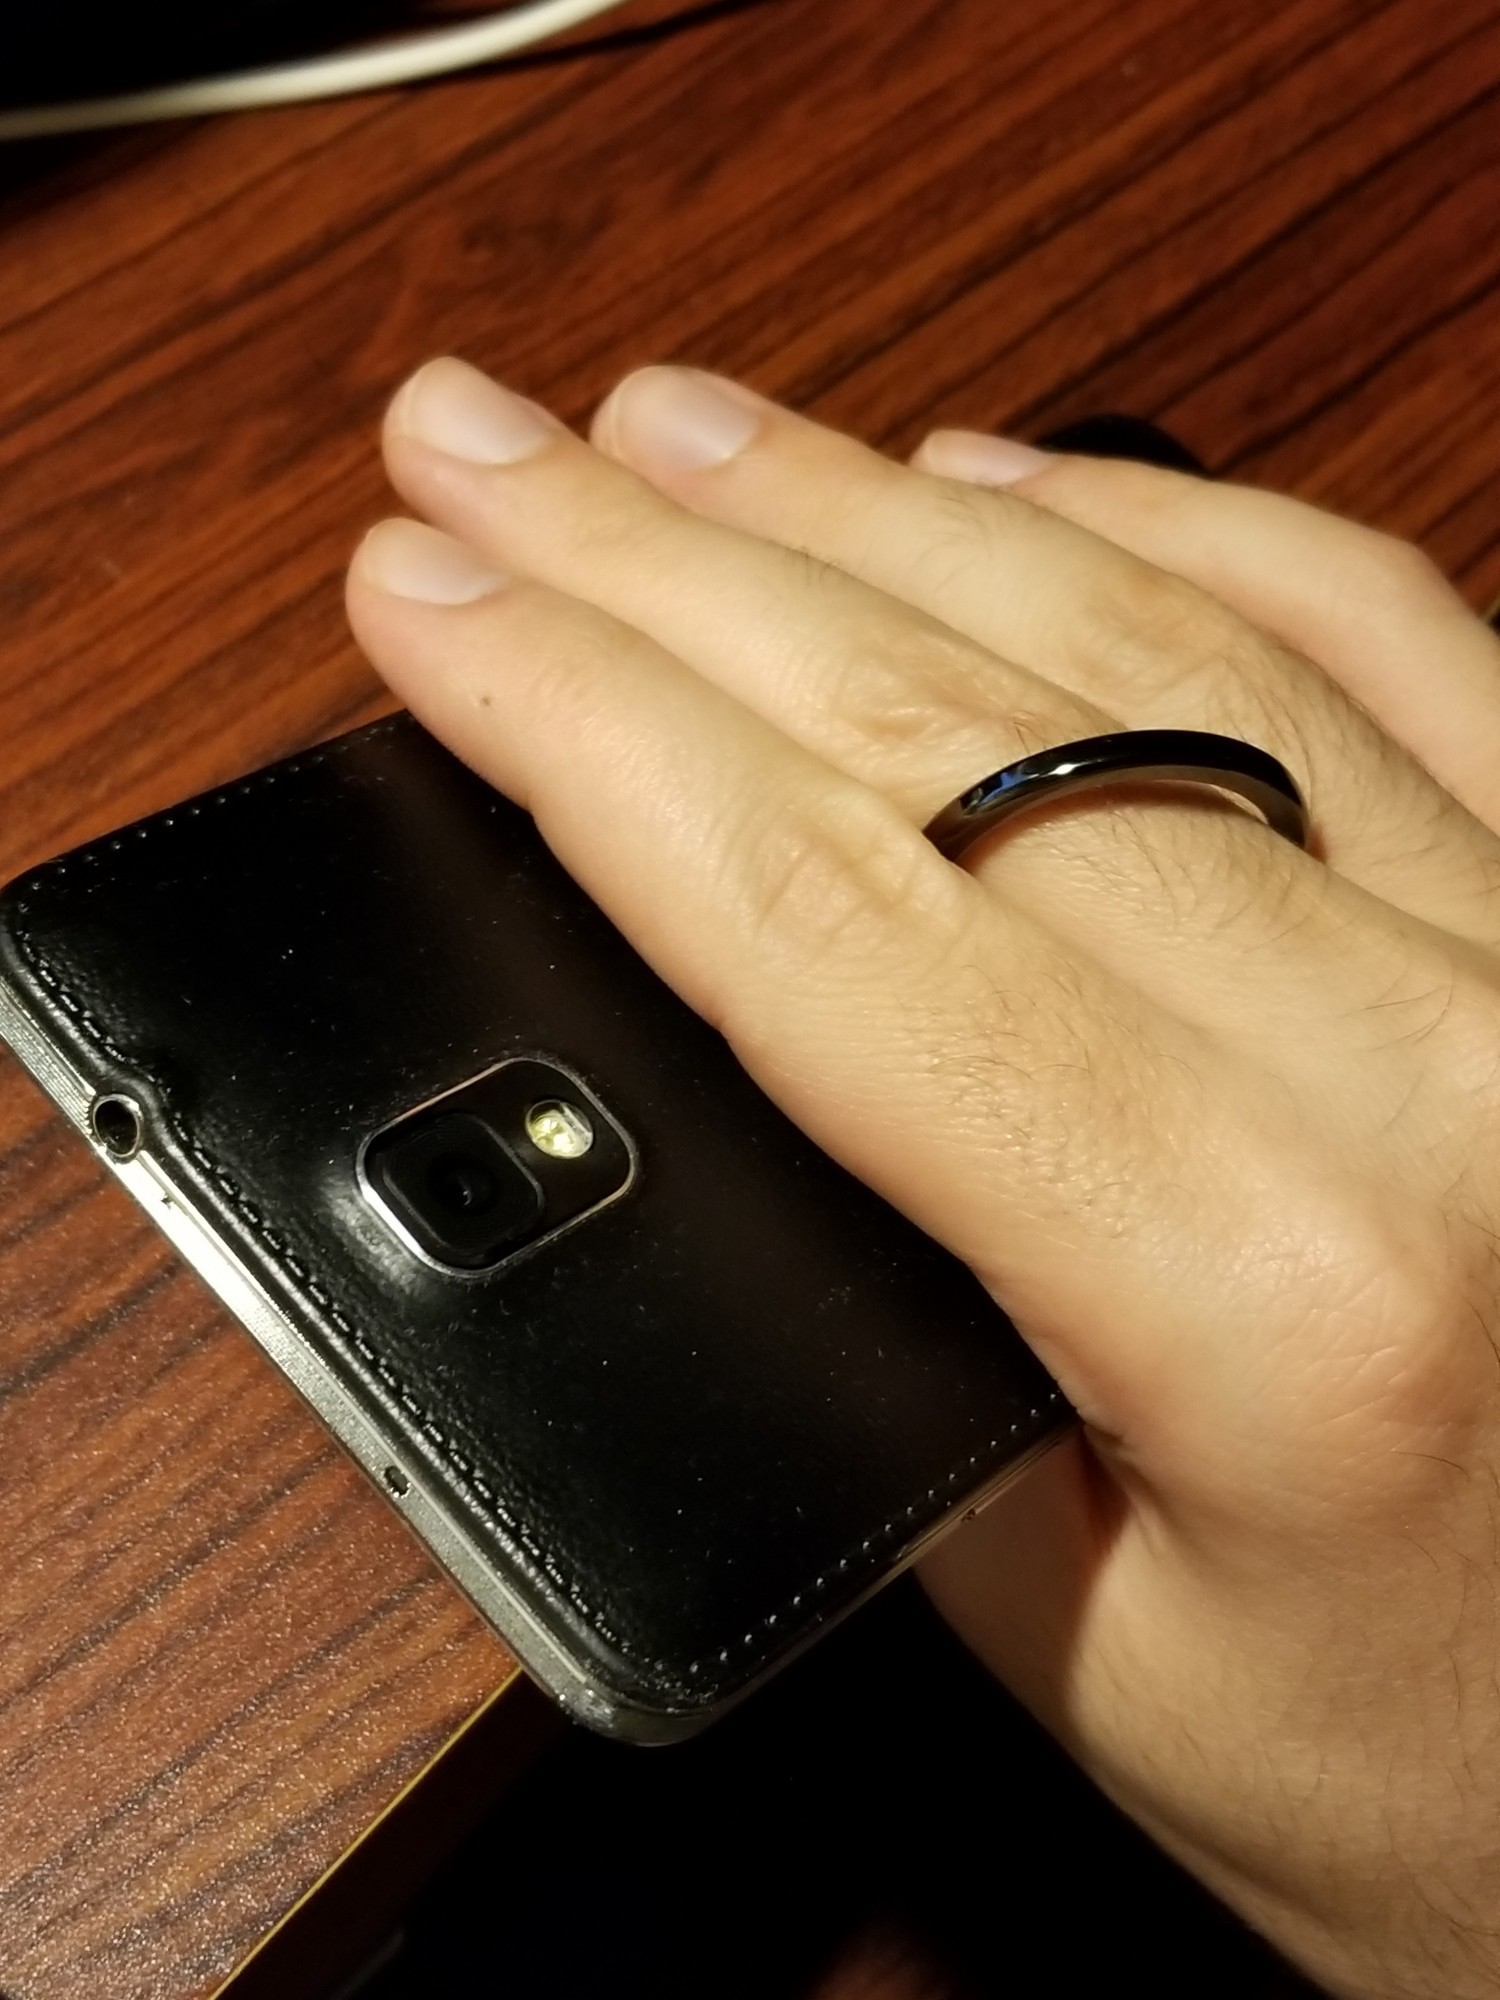 Overall, a nice and solid phone ring with a unique design and works good. (October 27, 2017)